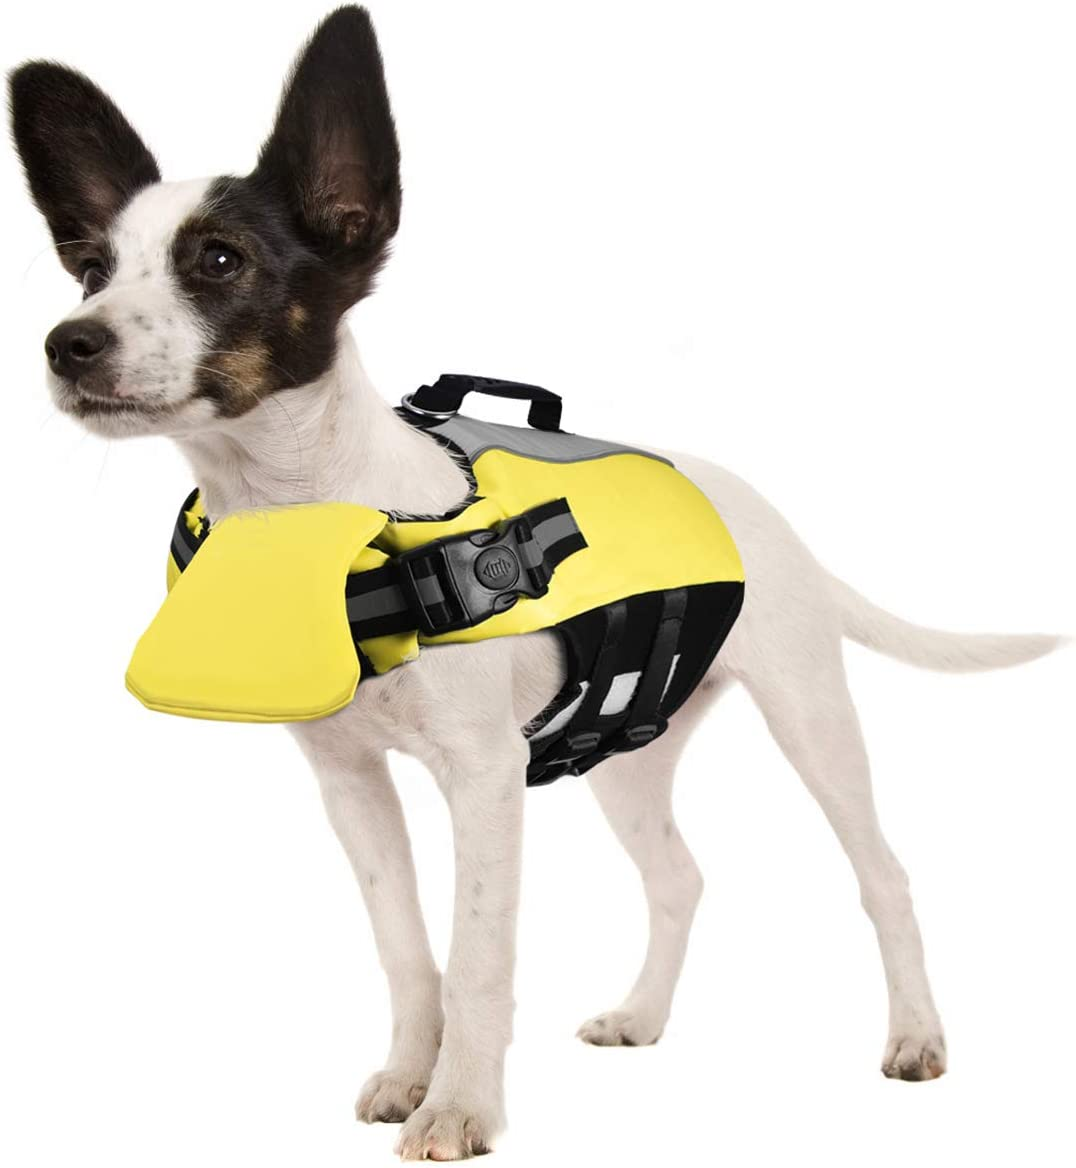 POPETPOP Max 80% OFF Dog Life Jacket for Swimming Float Coat Pet - Deluxe Reflectiv